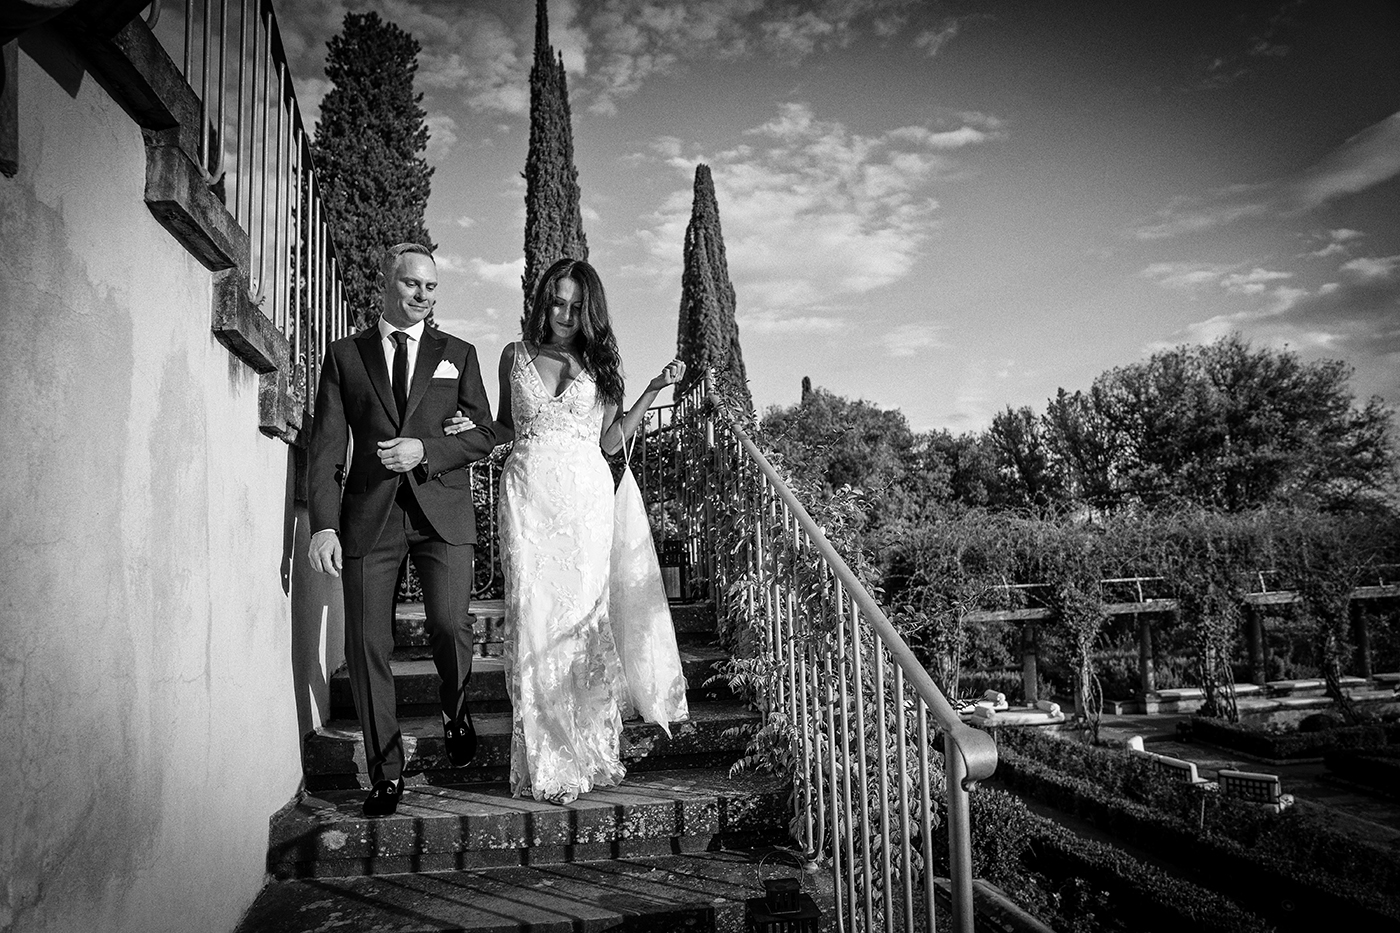 Elopement Photo Shoots In Florence at Il Salviatino by Duccio Argentini